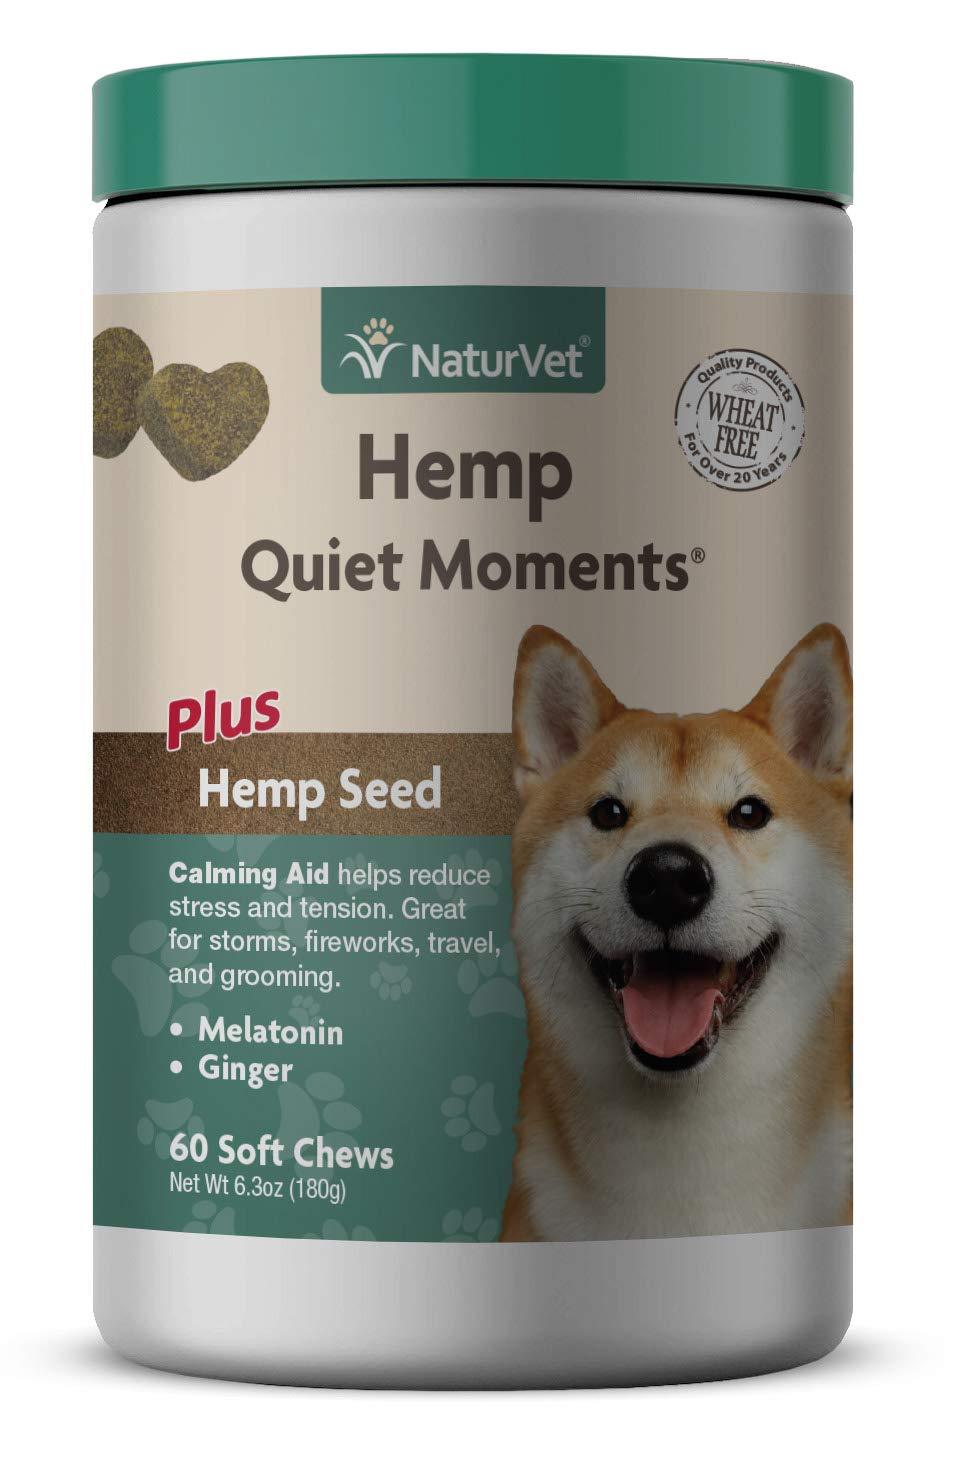 NaturVet Quiet Moments Hemp Soft Chews 60 Count (Jar) for Dogs